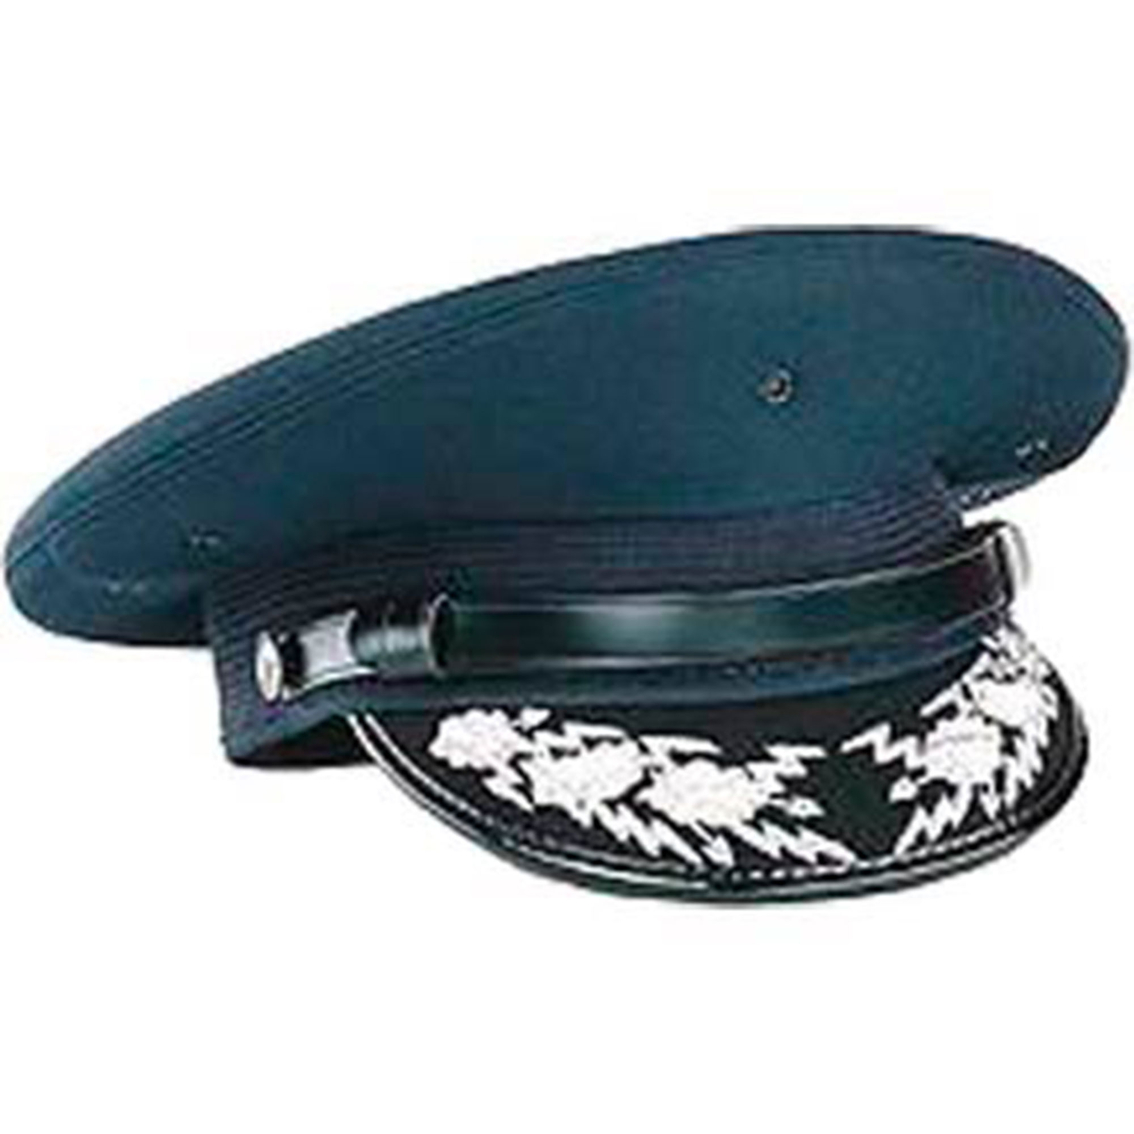 Air Force General Officer Service Cap  92c866f4e38